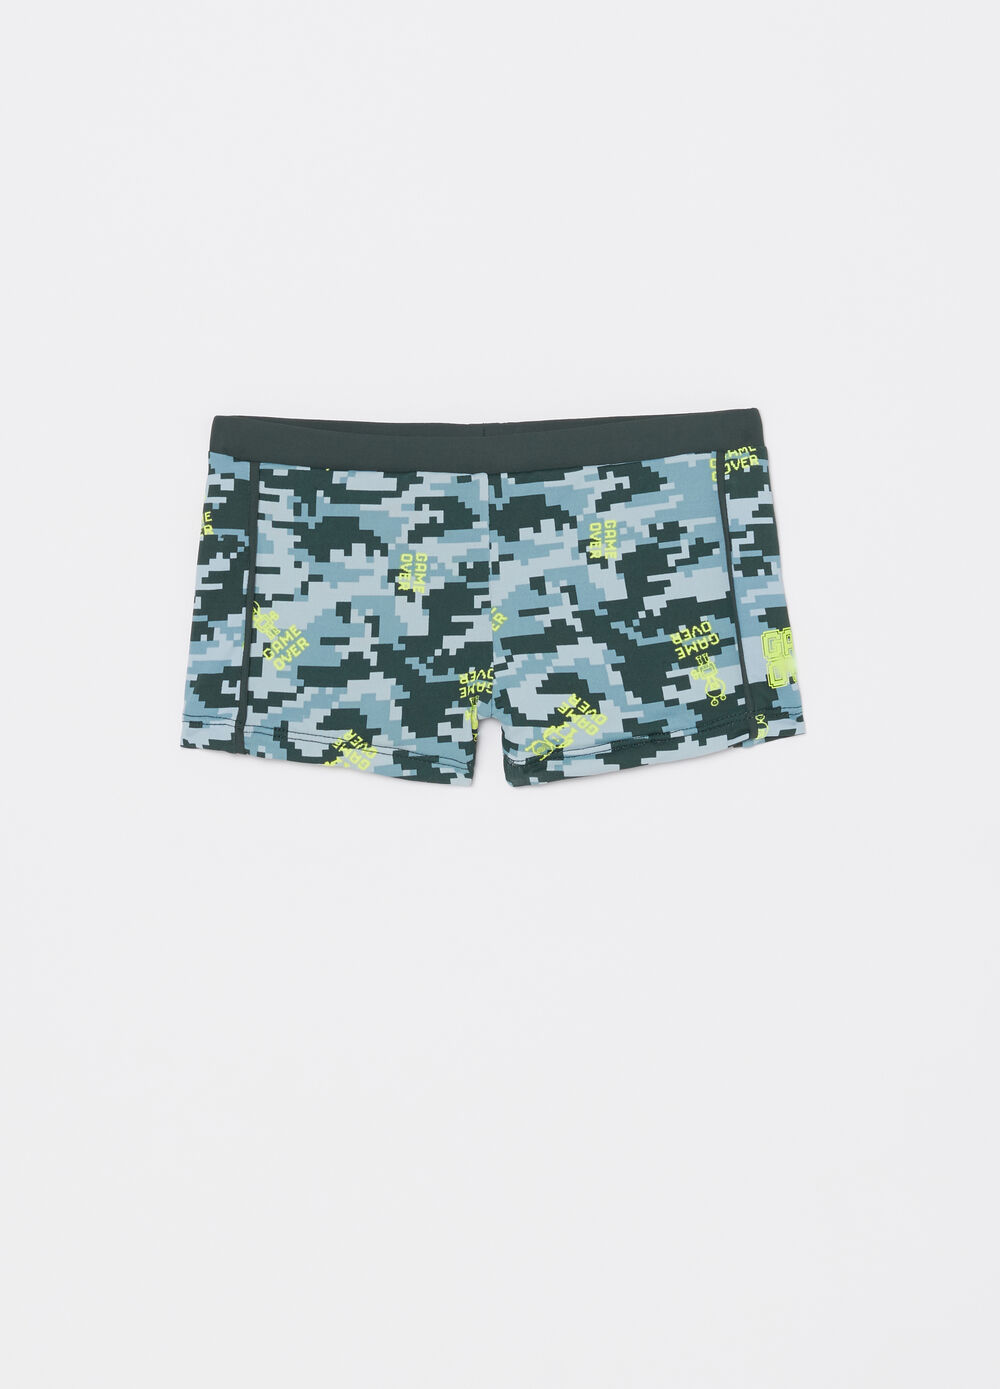 Camouflage patterned stretch swimming trunks